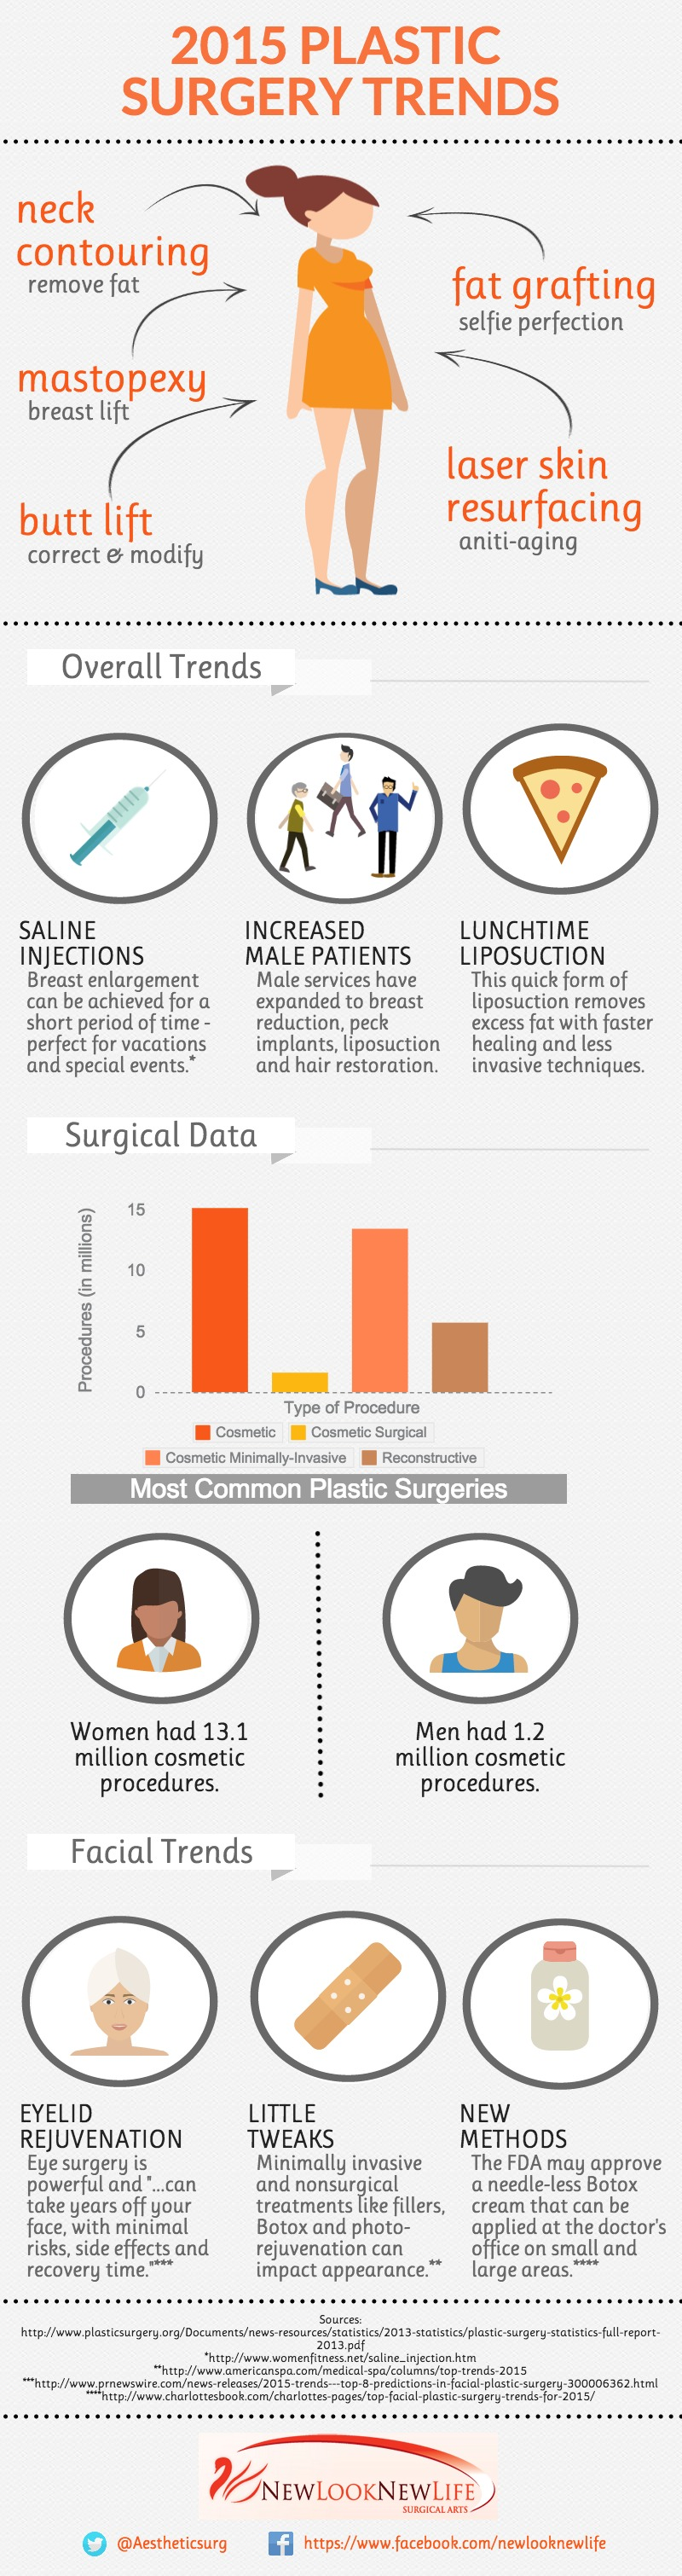 Plastic Surgery trends for 2015